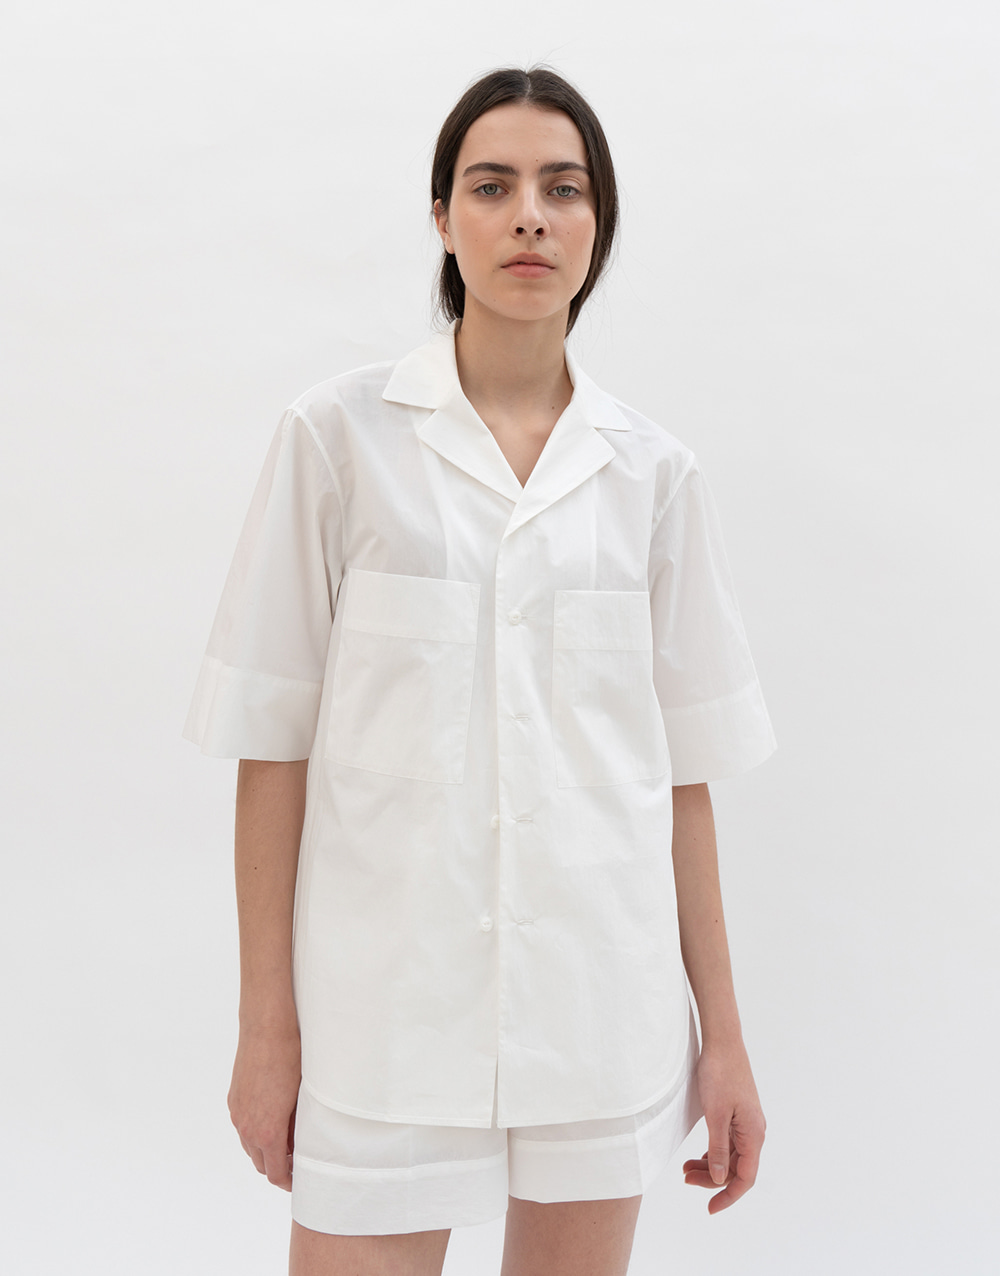 GBH APPAREL ADULT  Open Collar Shirts WHITE